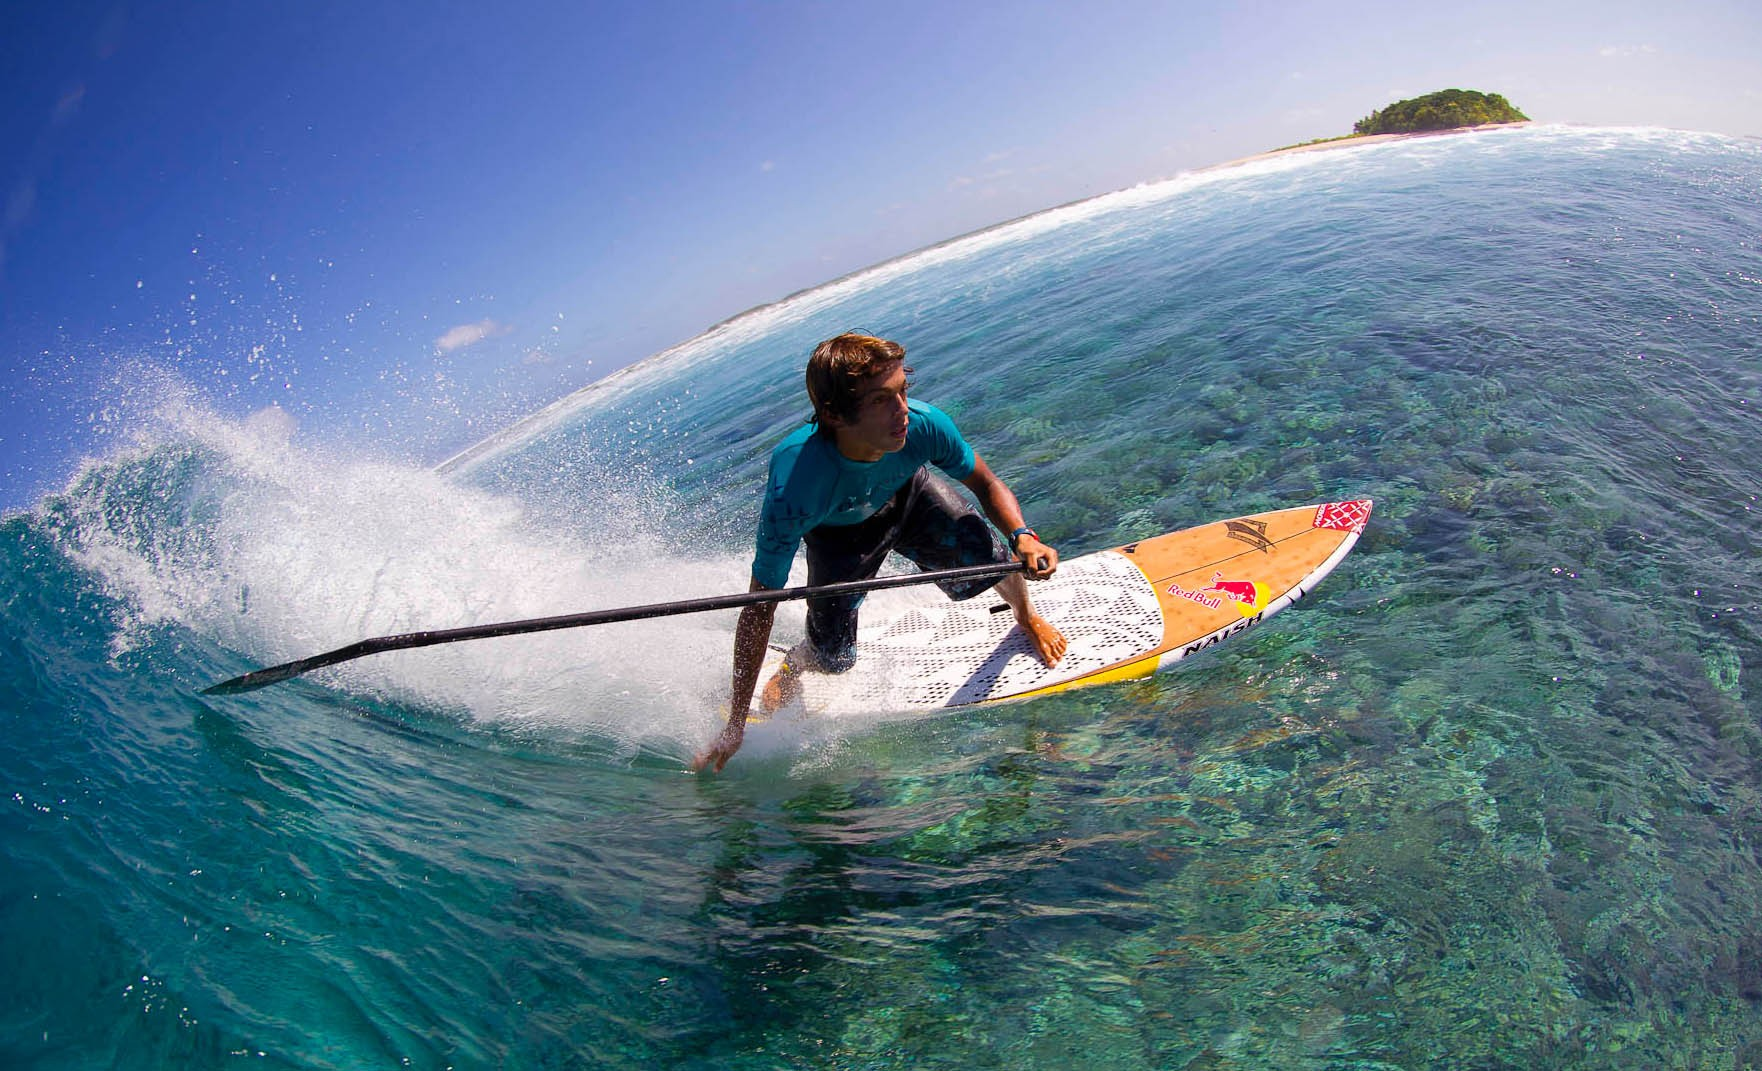 sup surfing wallpaper - photo #13